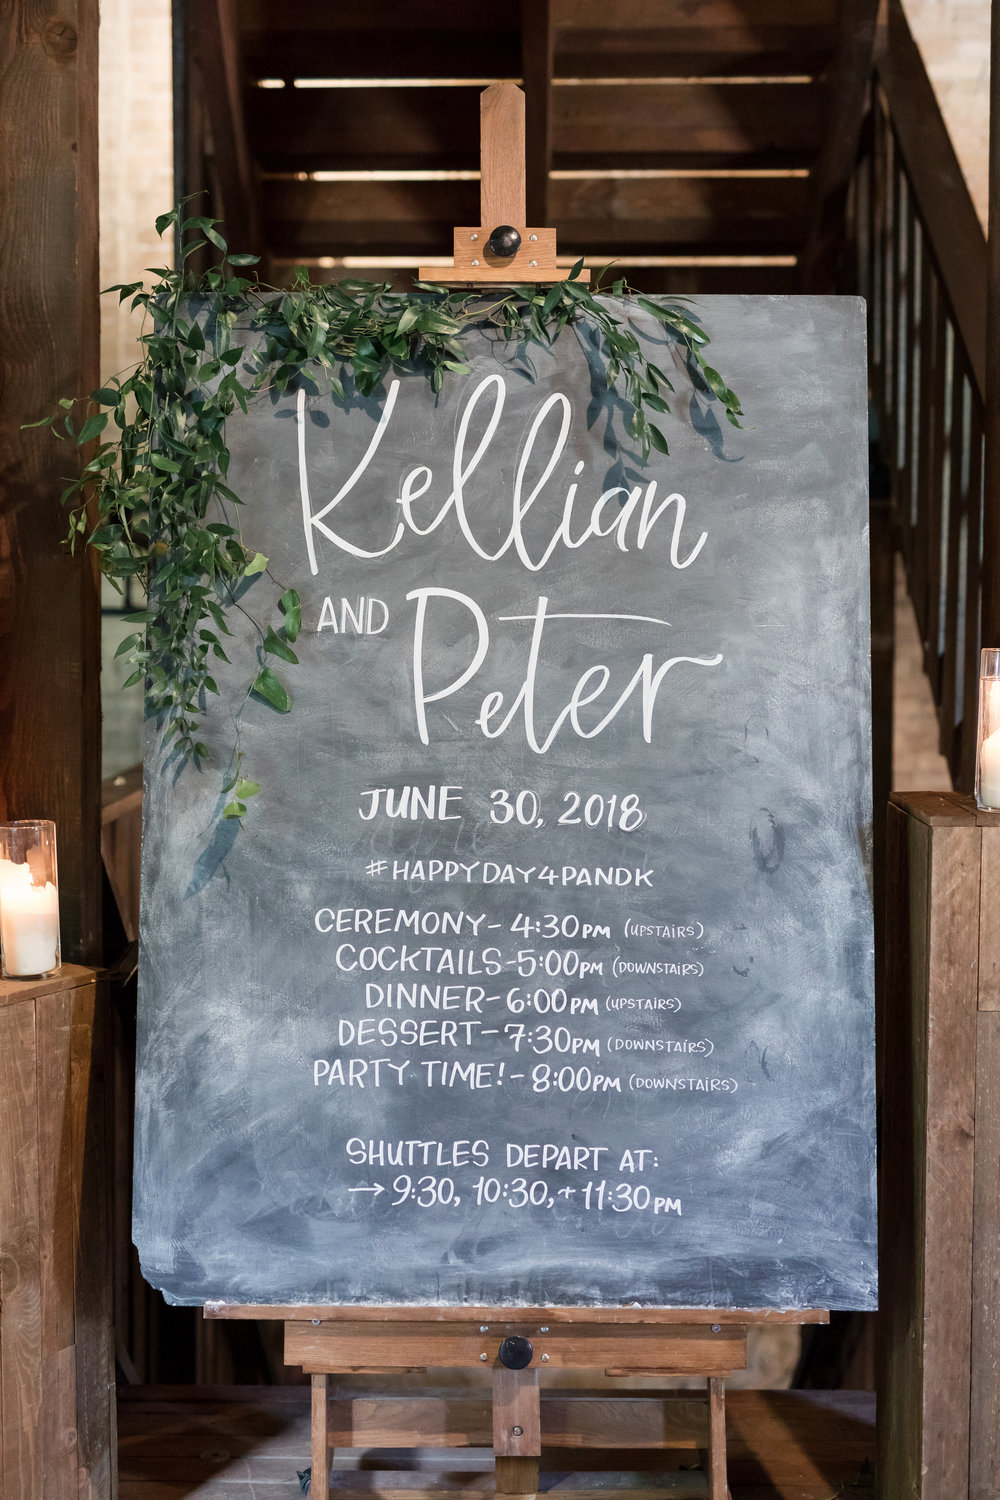 Kellian & Peter - The Lageret-0053.jpg